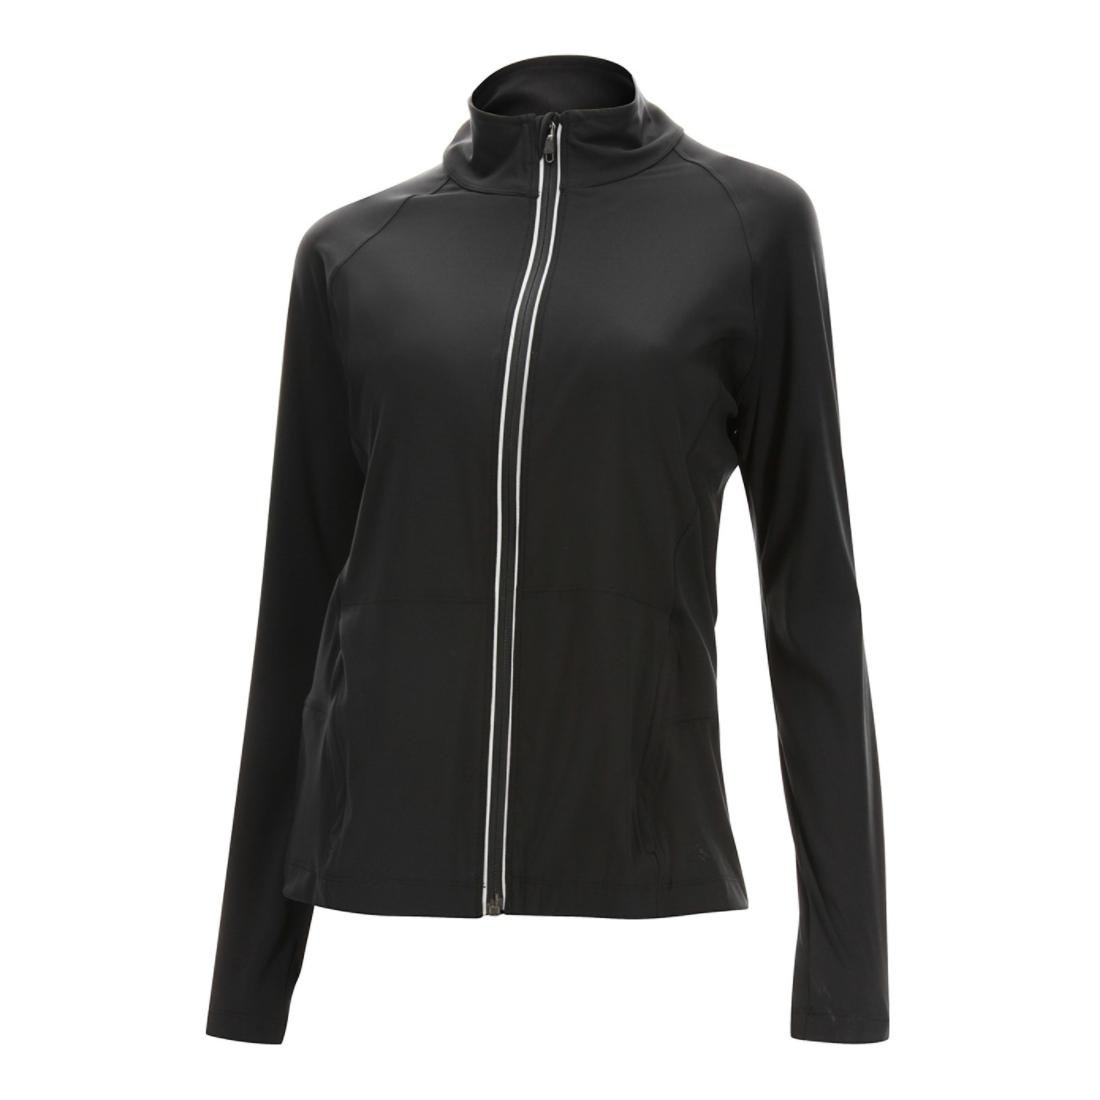 2XU Women's Form Studio Jacket, Black/Black, Small 2XU Pty Ltd WR4159a